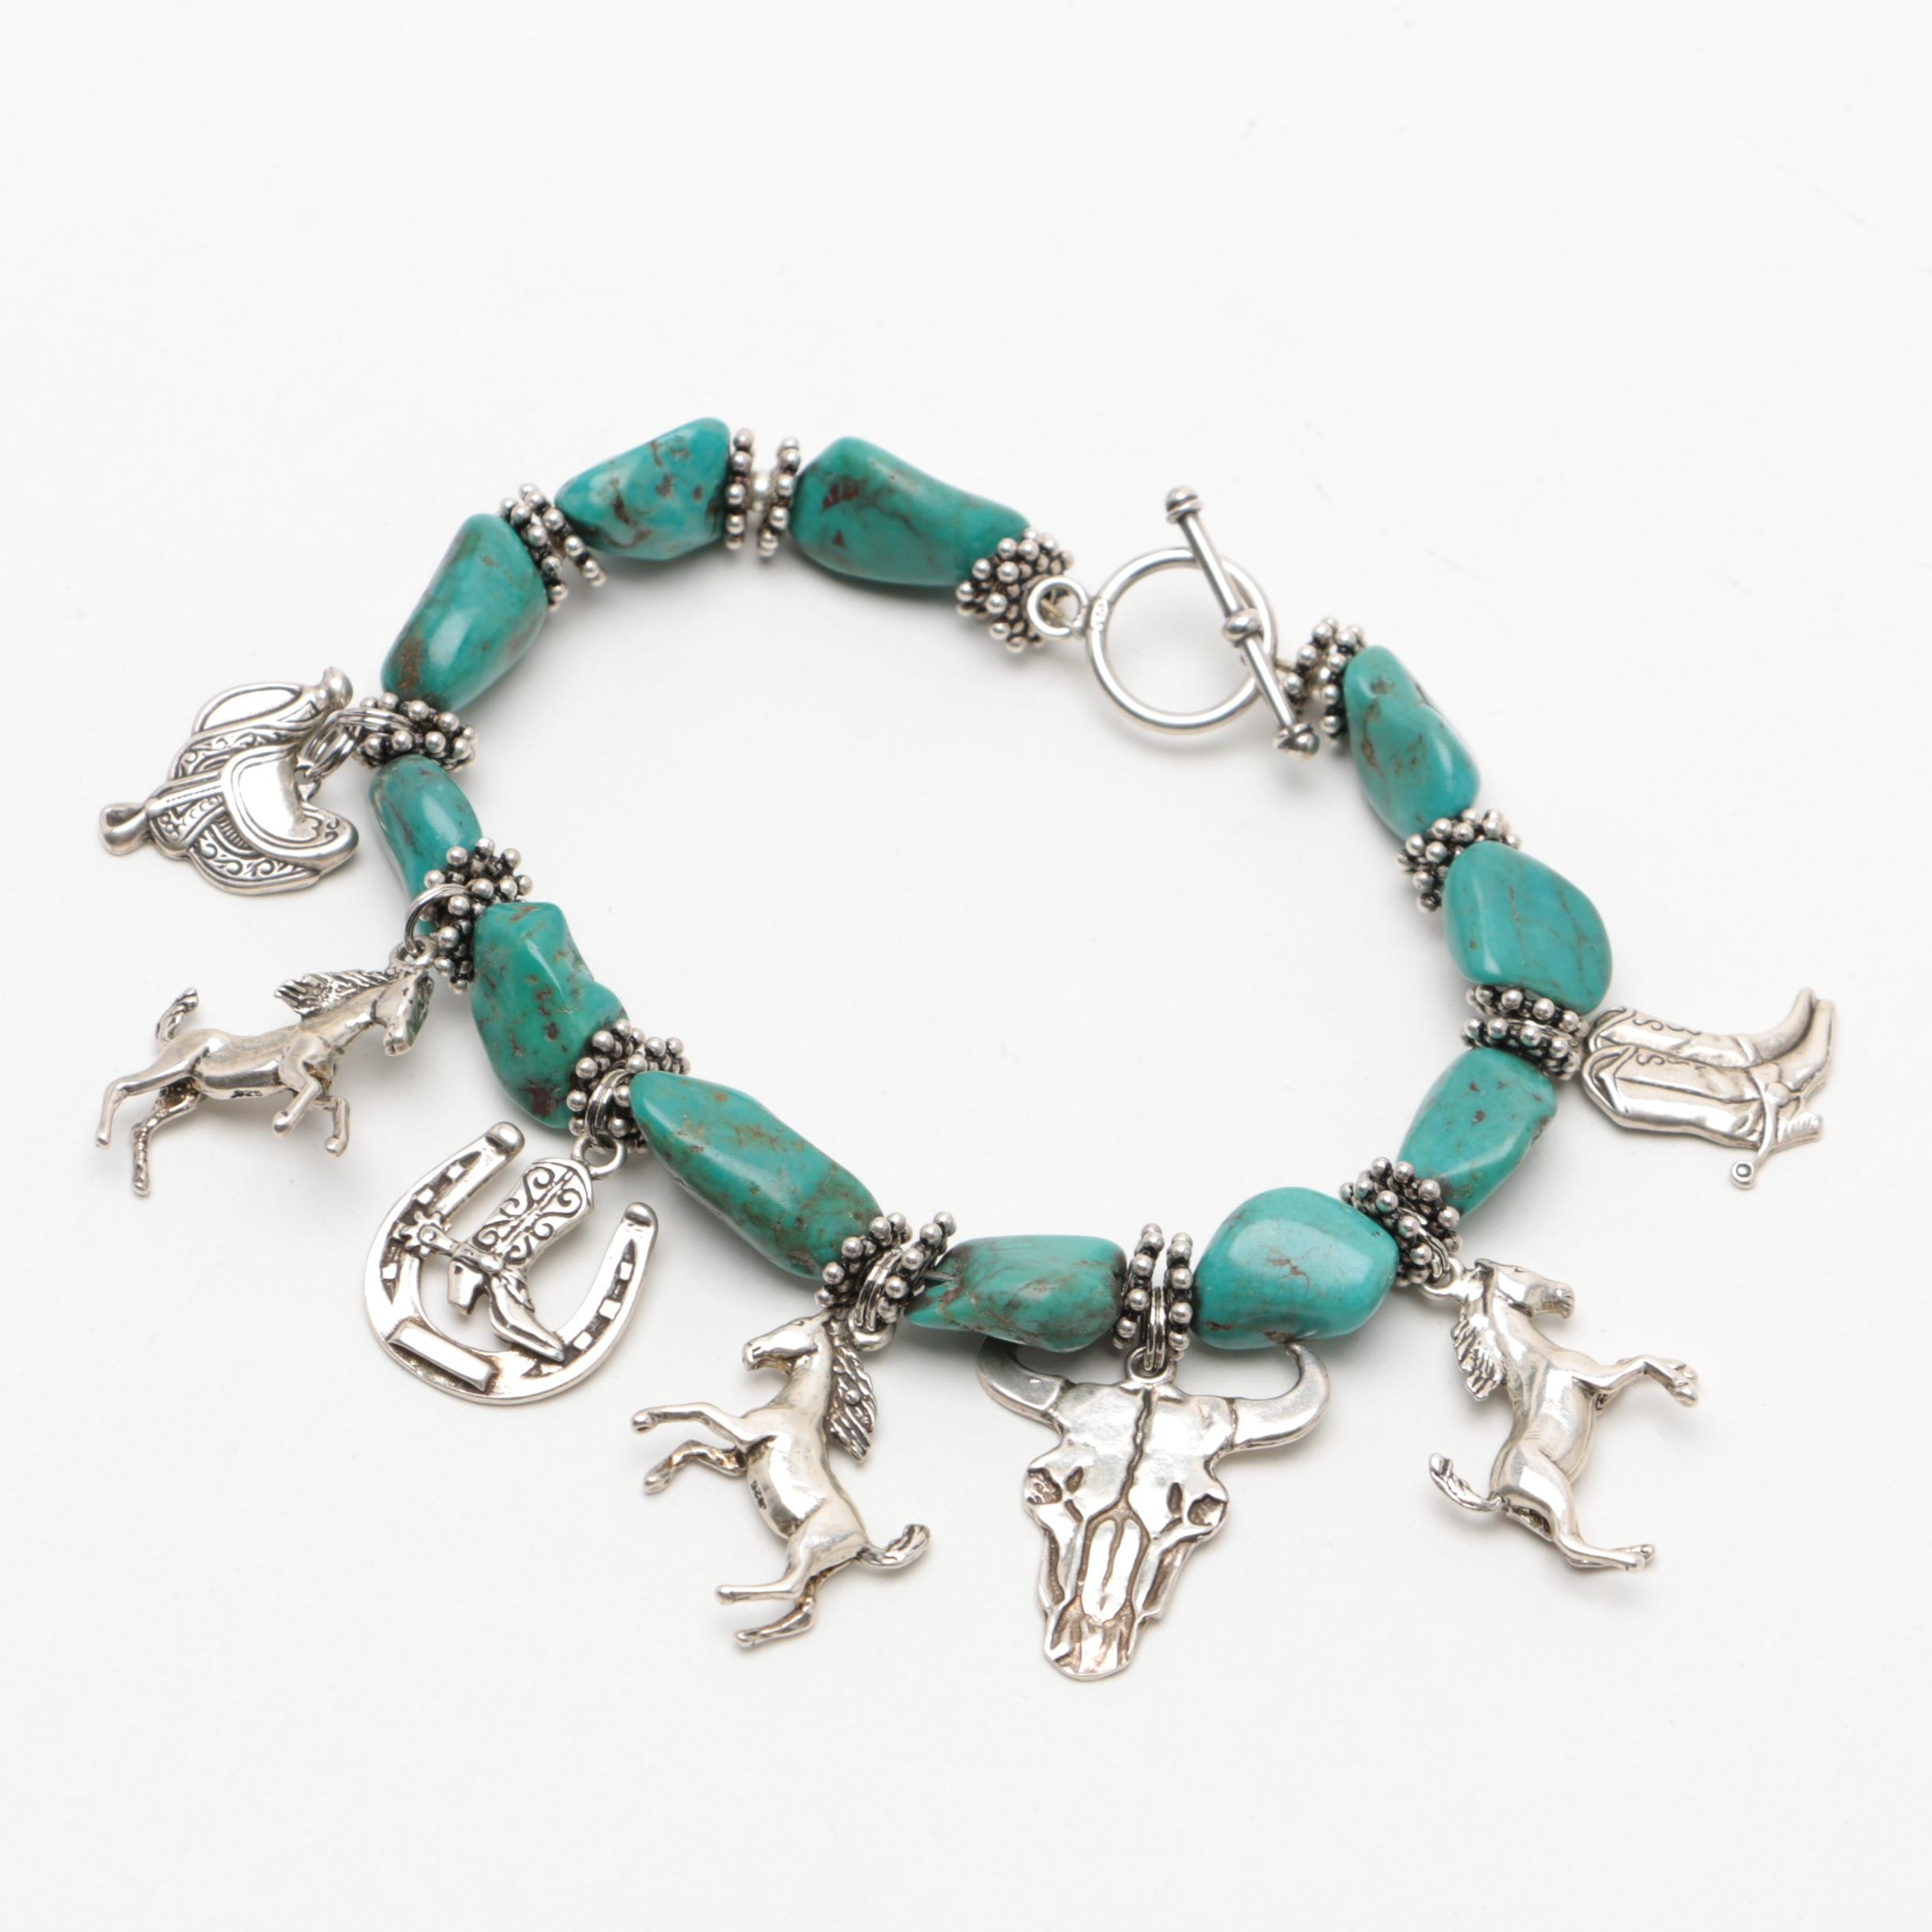 Southwest Style Sterling Silver Charm and Dyed Howlite Bracelet